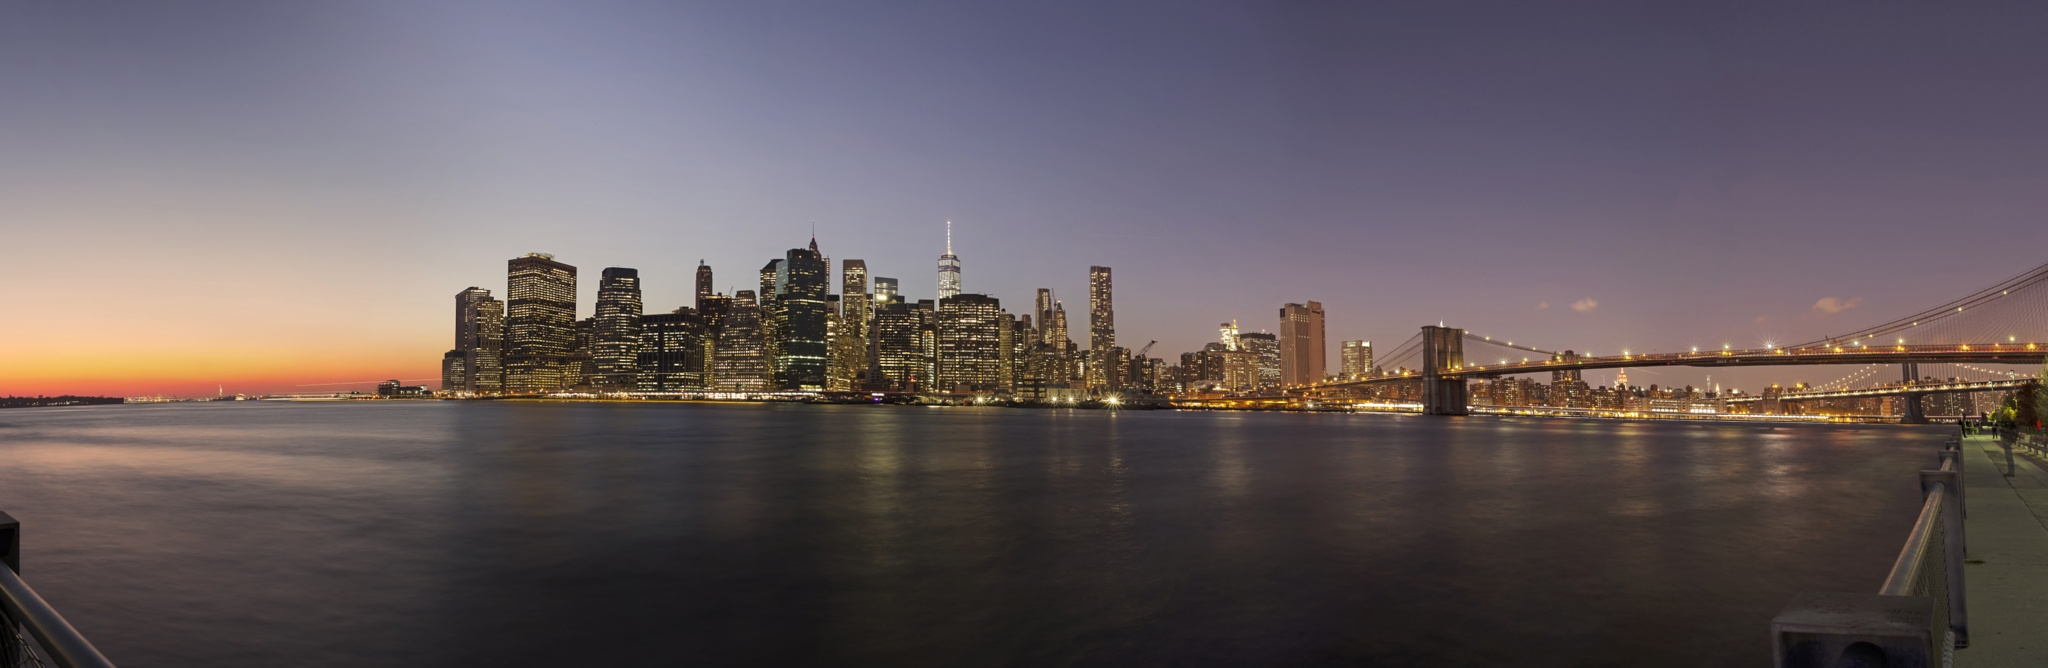 Good Night Manhattan by Sebastian Helmke